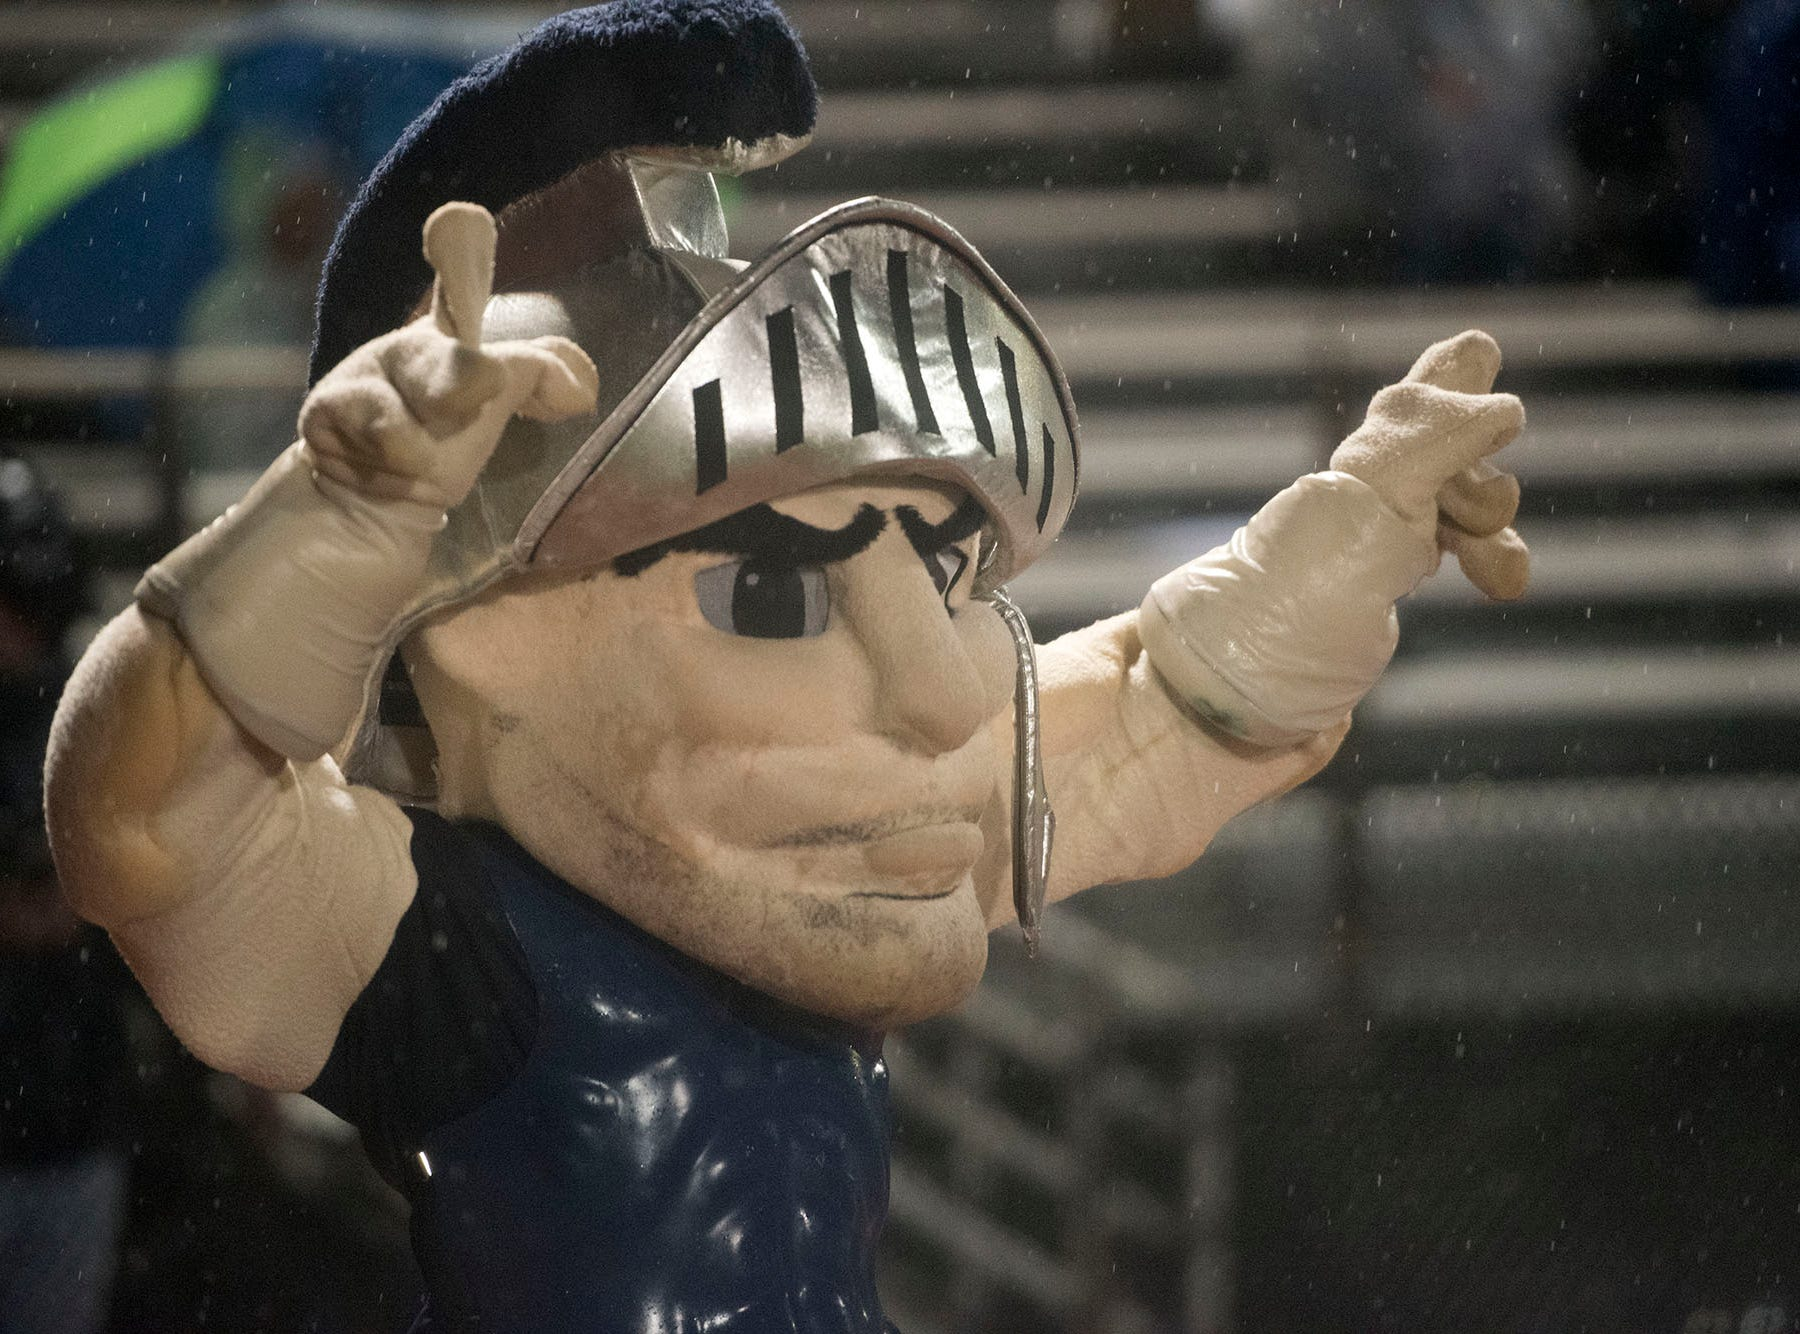 The Trojan mascot cheers for the team. Chambersburg Trojans dropped a close game 20-17 to Manheim Township Blue Streaks in the rain during PIAA District 3 playoff football on Friday, Nov. 2, 2018.